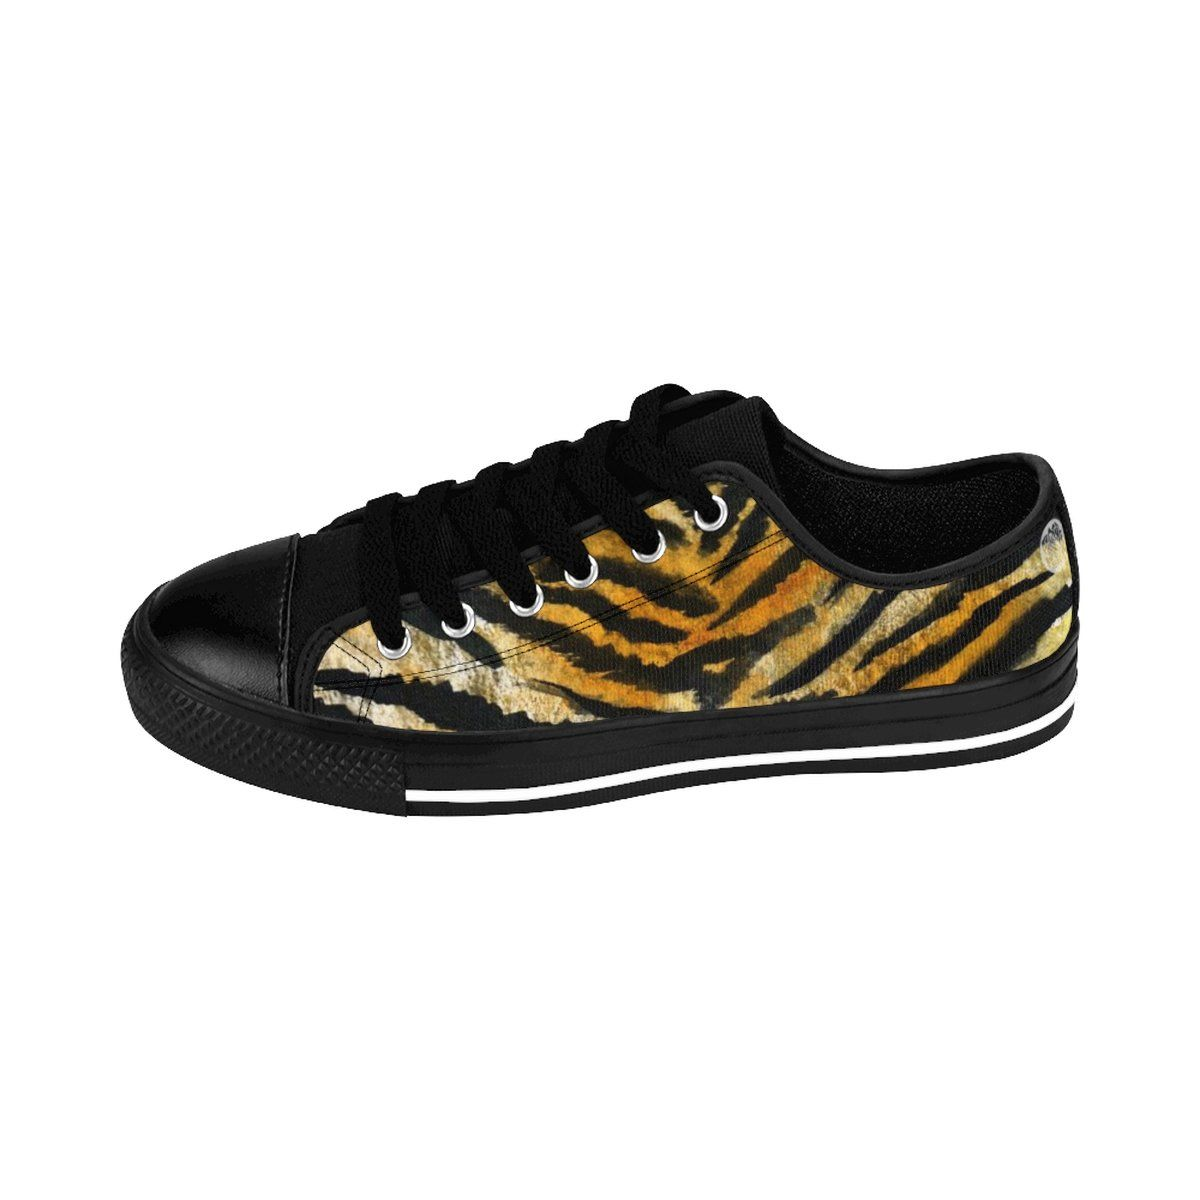 16+ Animal print tennis shoes images